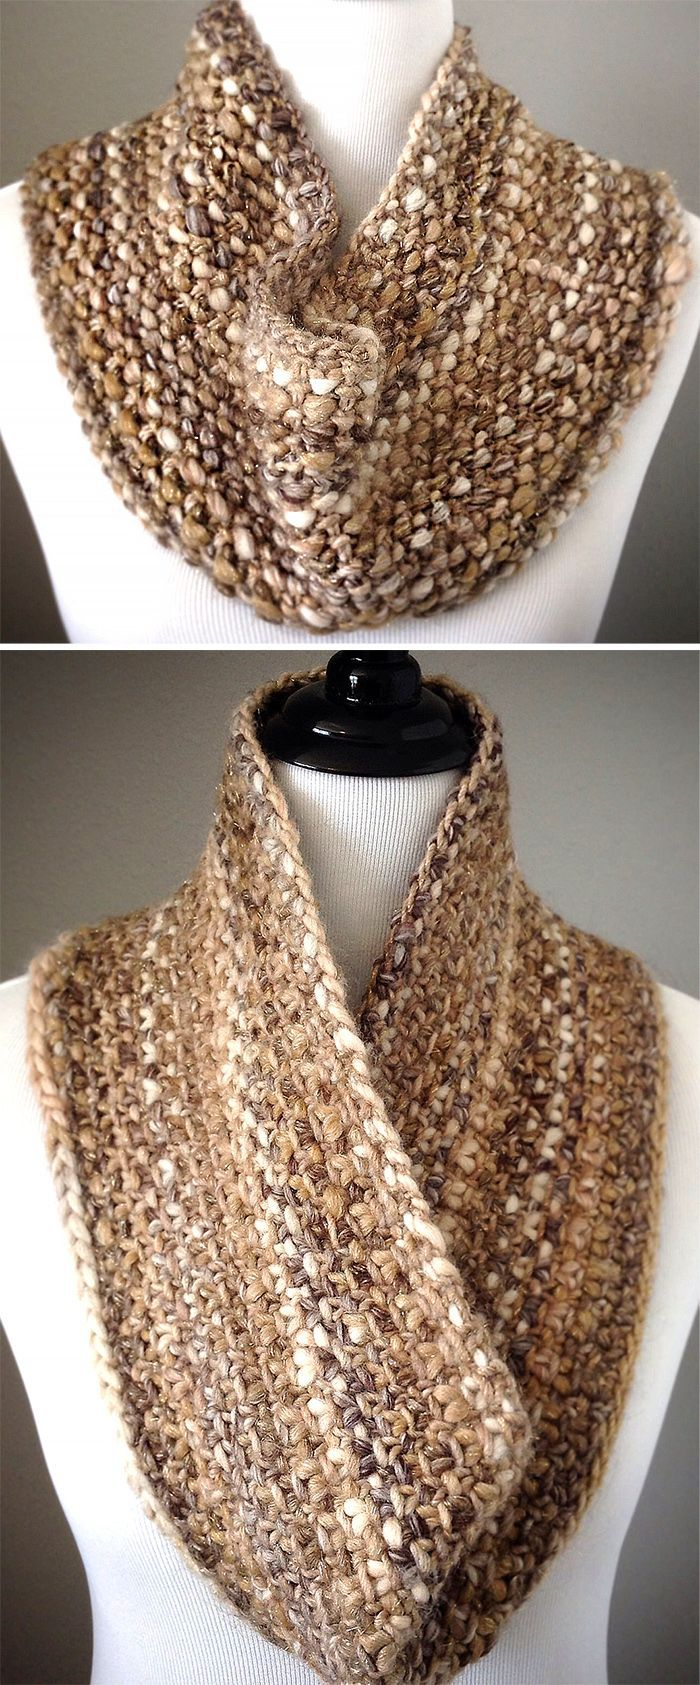 Free Knitting Pattern for Quick Slip Cowl - Reversible cowl in linen stitch gives you a different look depending on which side is visible. Quick knit in super bulky yarn. Designed by Andra Asars. Pictured project byivillarreal1997.